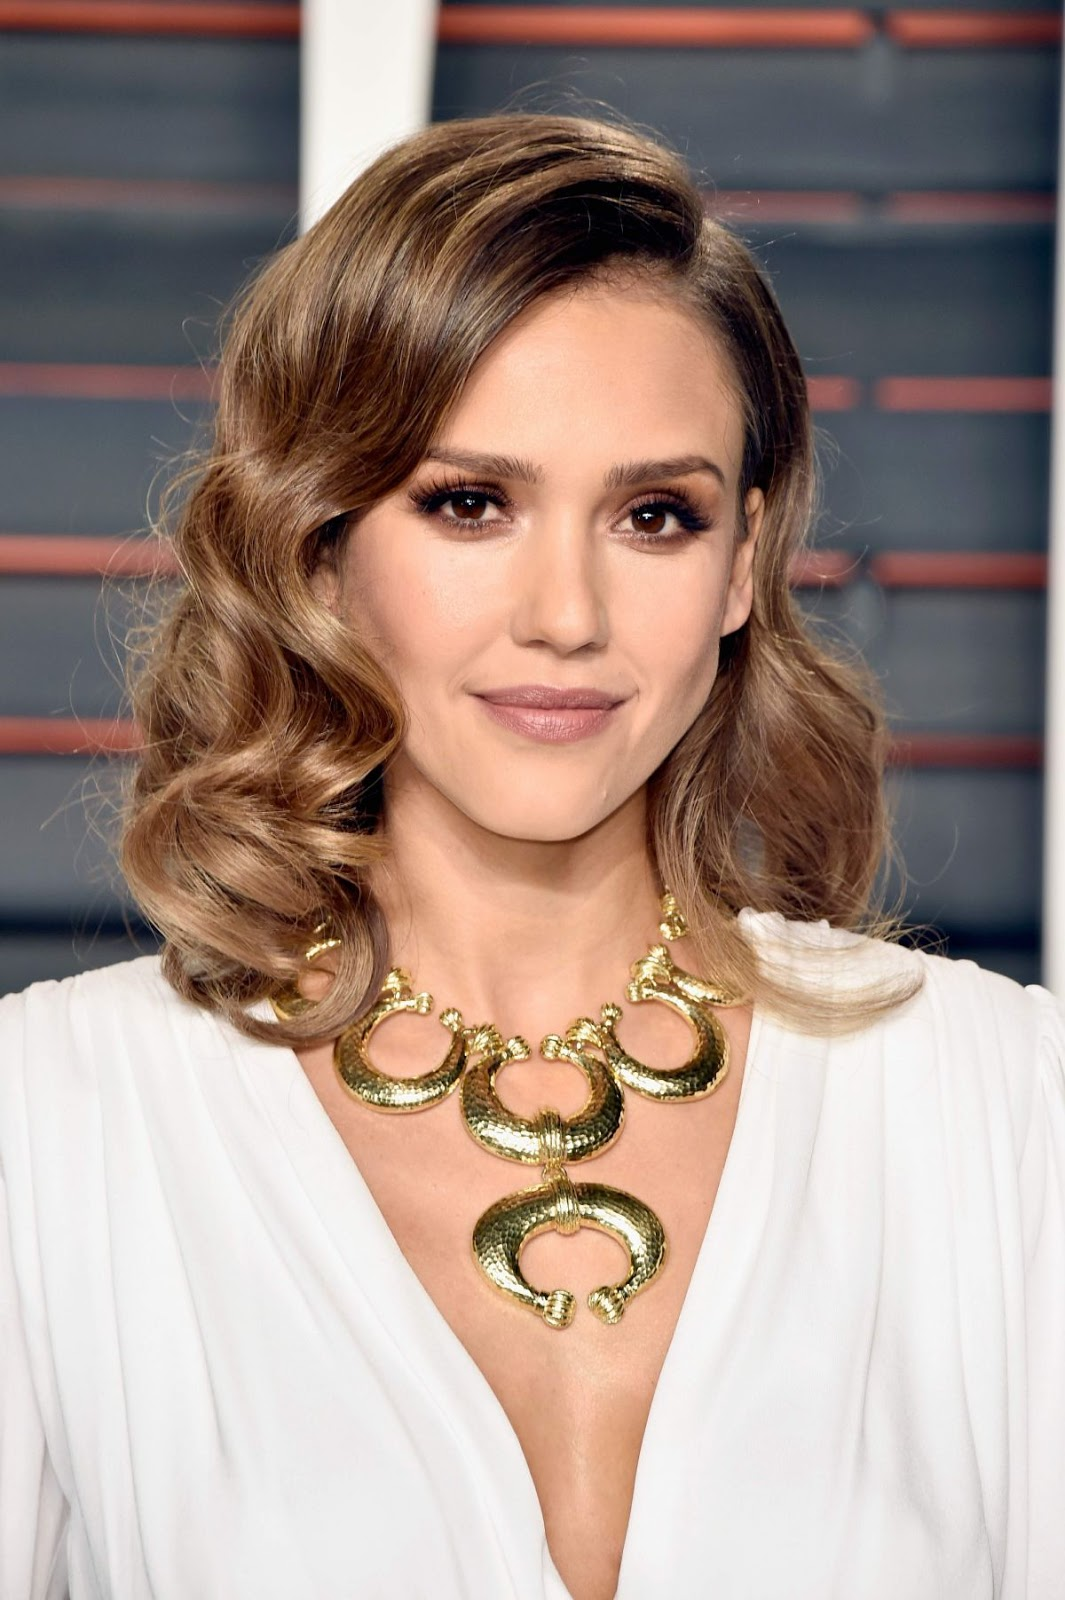 Jessica Alba at Vanity Fair Oscar 2016 party in Beverly Hills